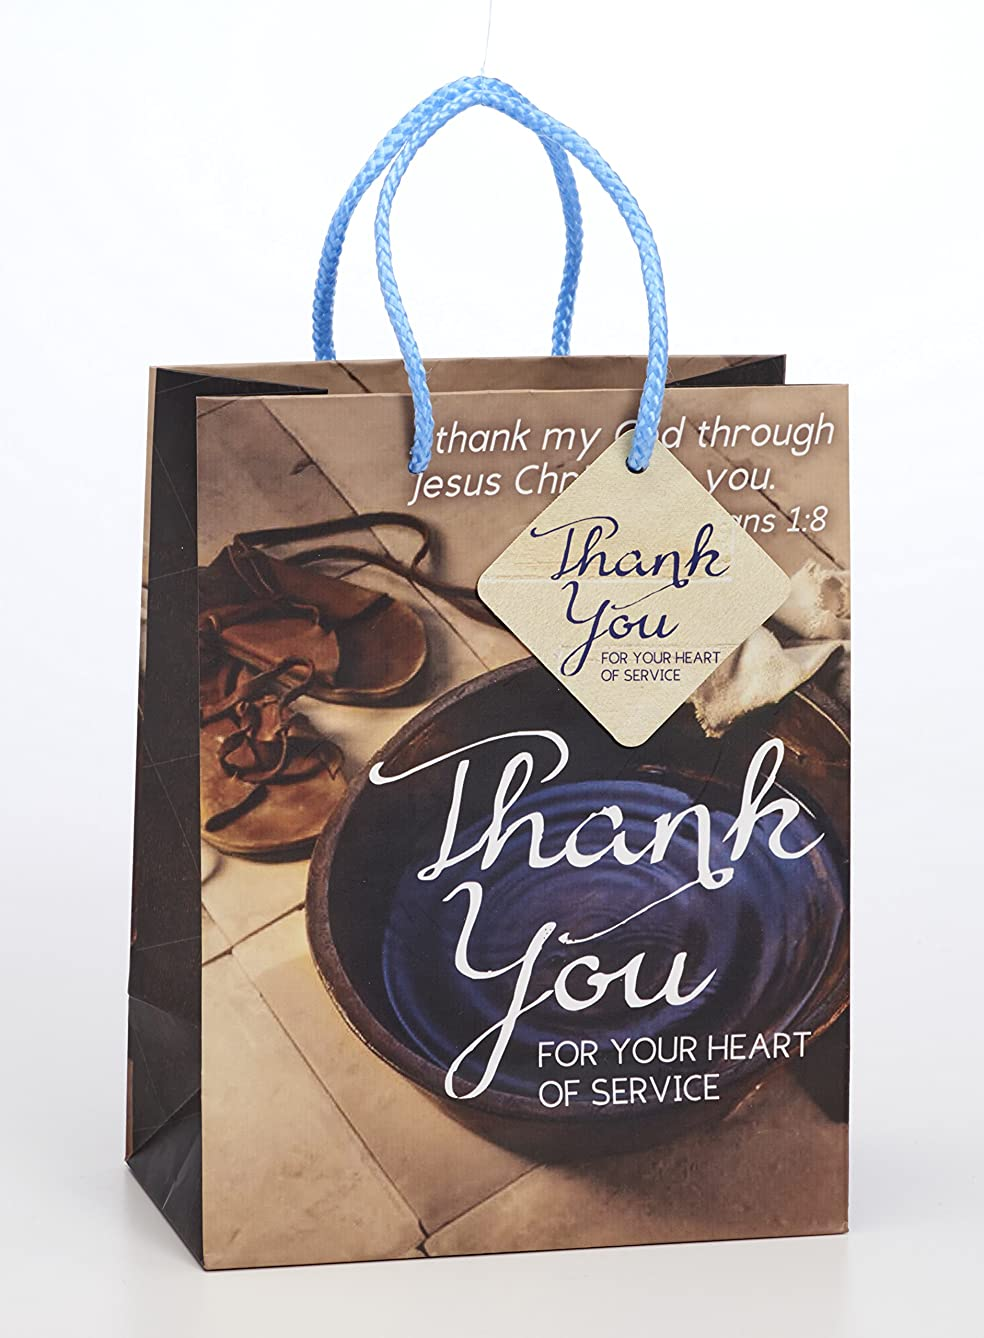 Thank Your Heart Service 7 x 9 Inch Paper Gift Bag with Tag Pack of 2